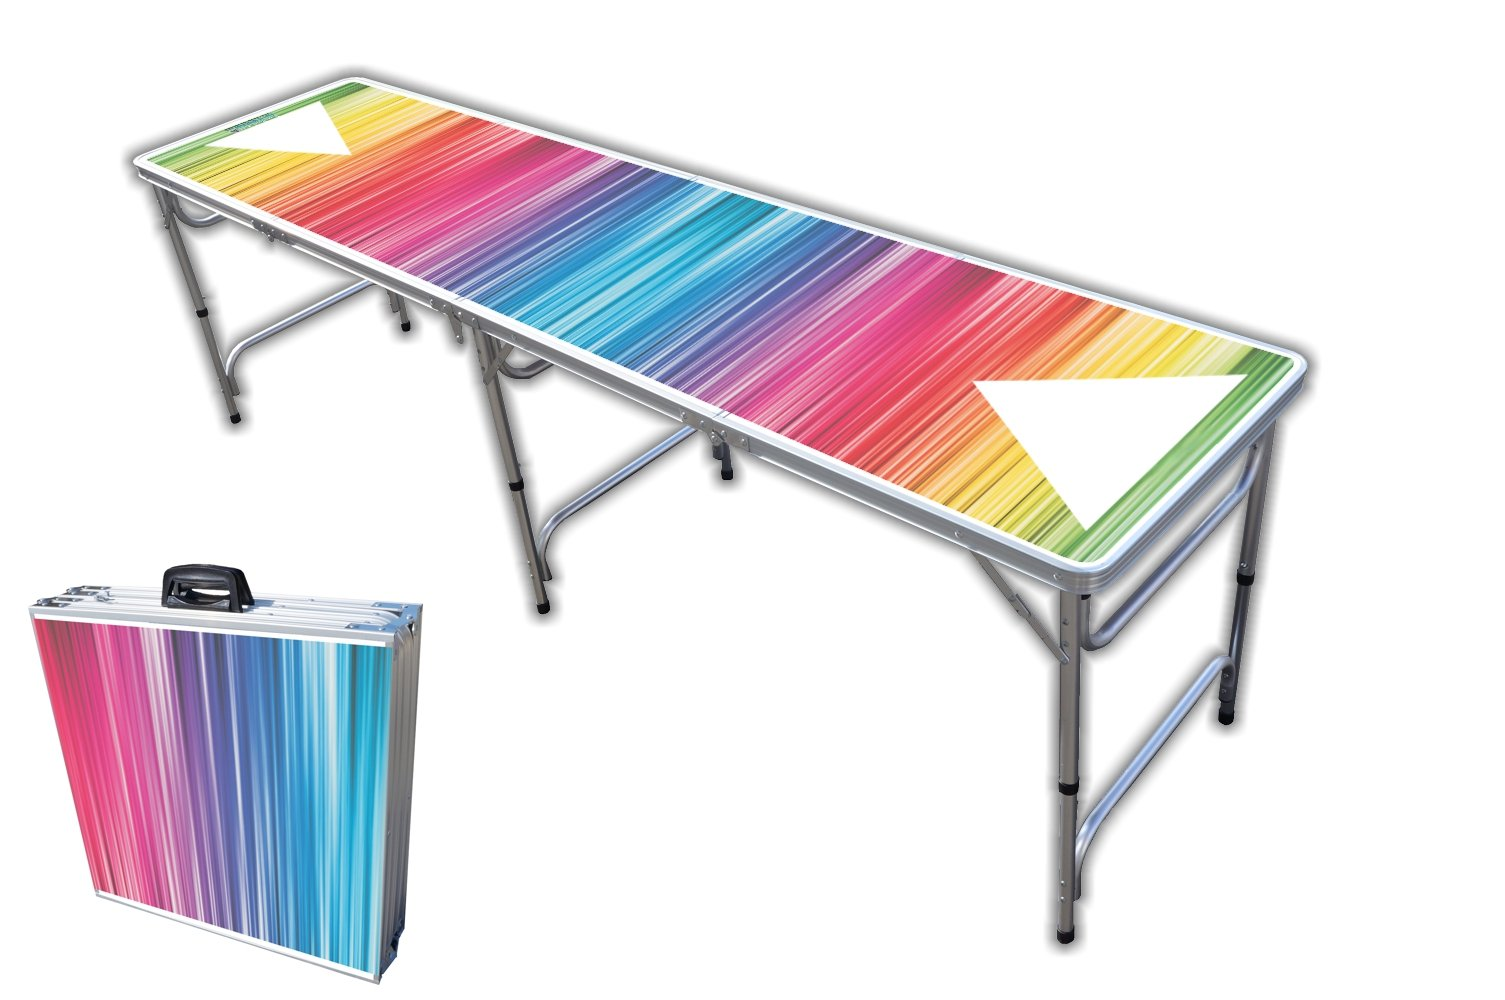 8-Foot Professional Beer Pong Table - Color Spectrum Graphic